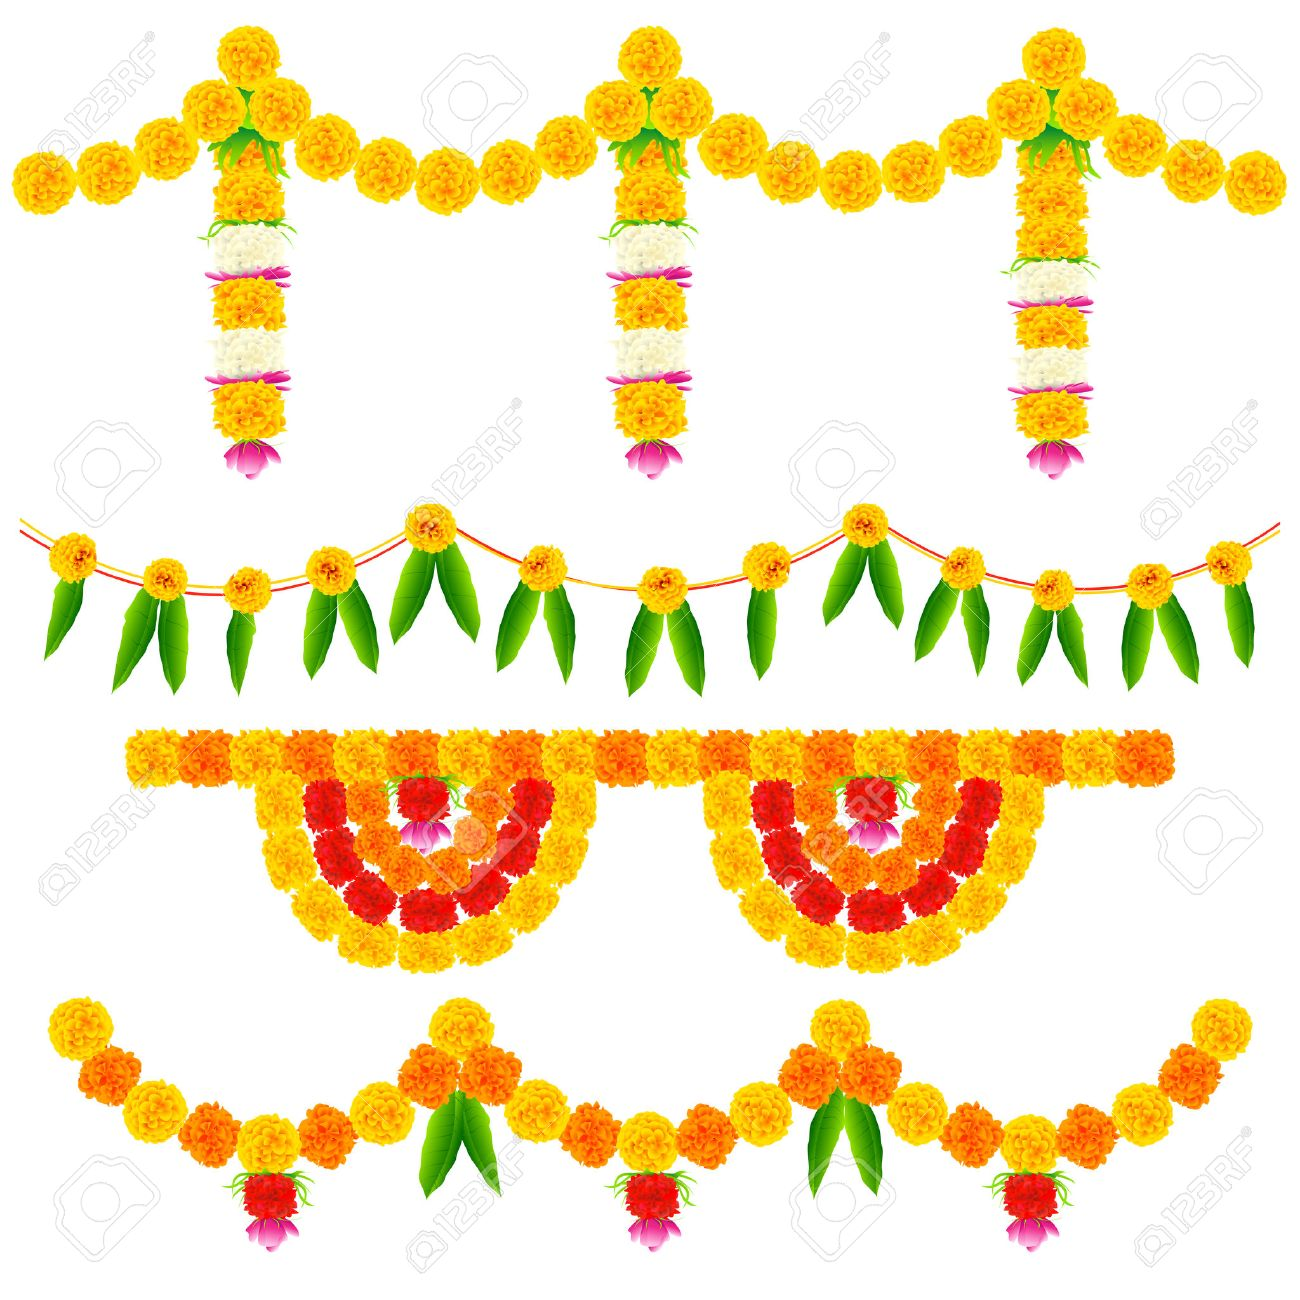 Indian Festival Decoration Illustration Of Colorful Flower Arrangement For Festival